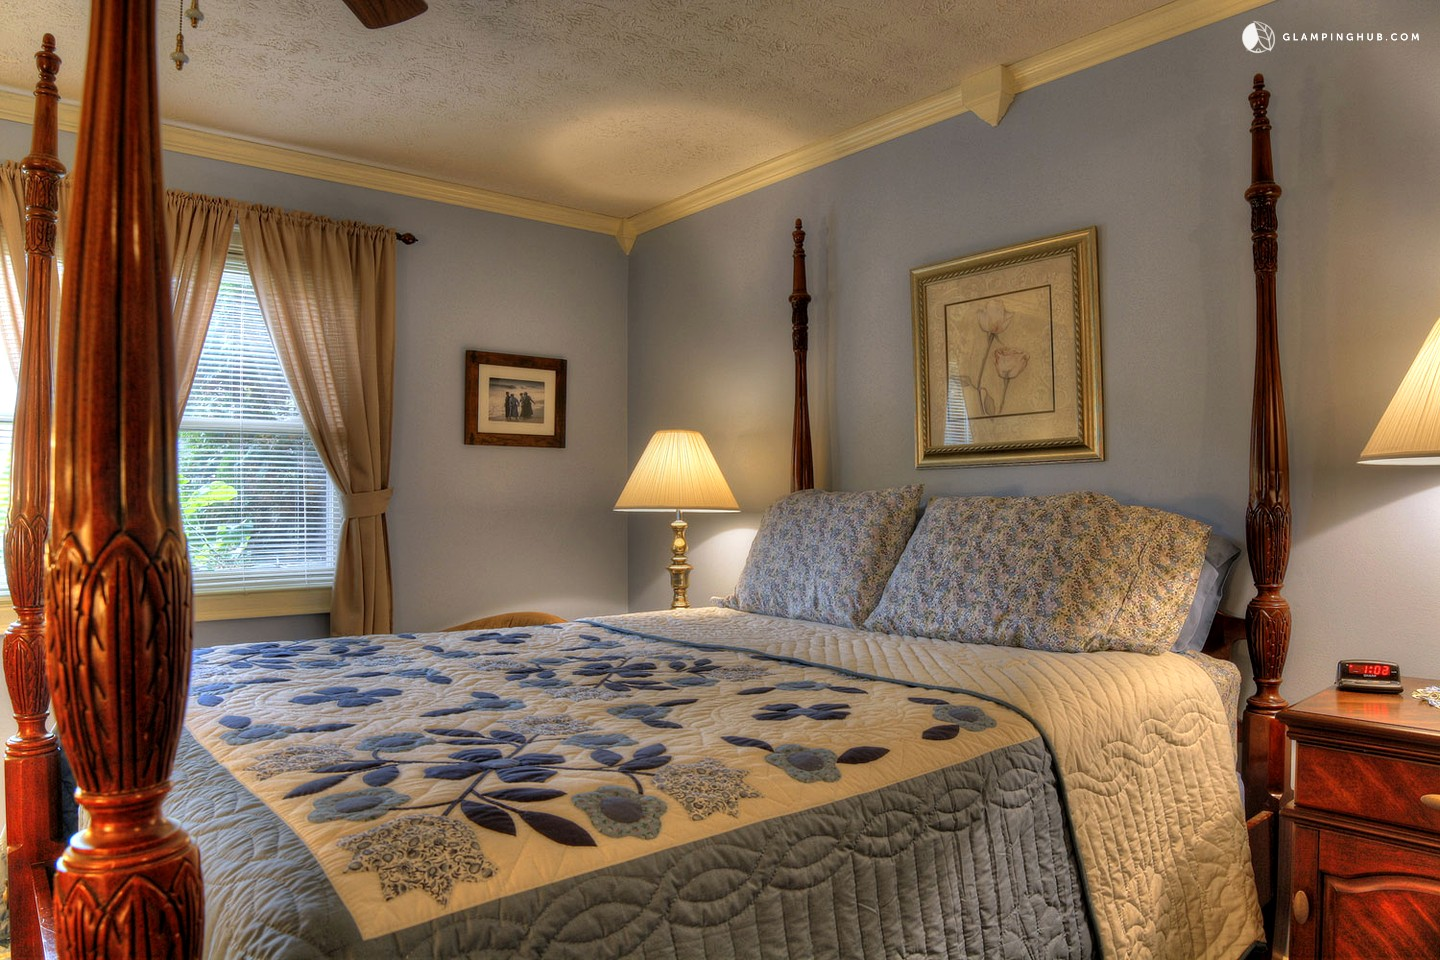 Most Romantic Bed And Breakfast East Coast